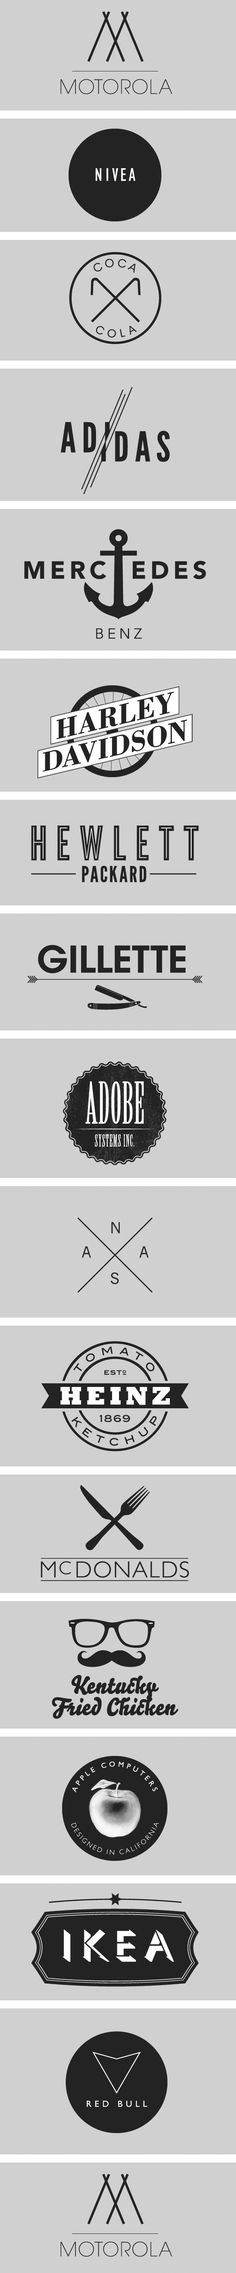 Beautiful Logos. There's something about the simplicity of the design elements, and the impact of their significance as the face and personality of their brands. Plus I'm loving this playful twist on these known brands.